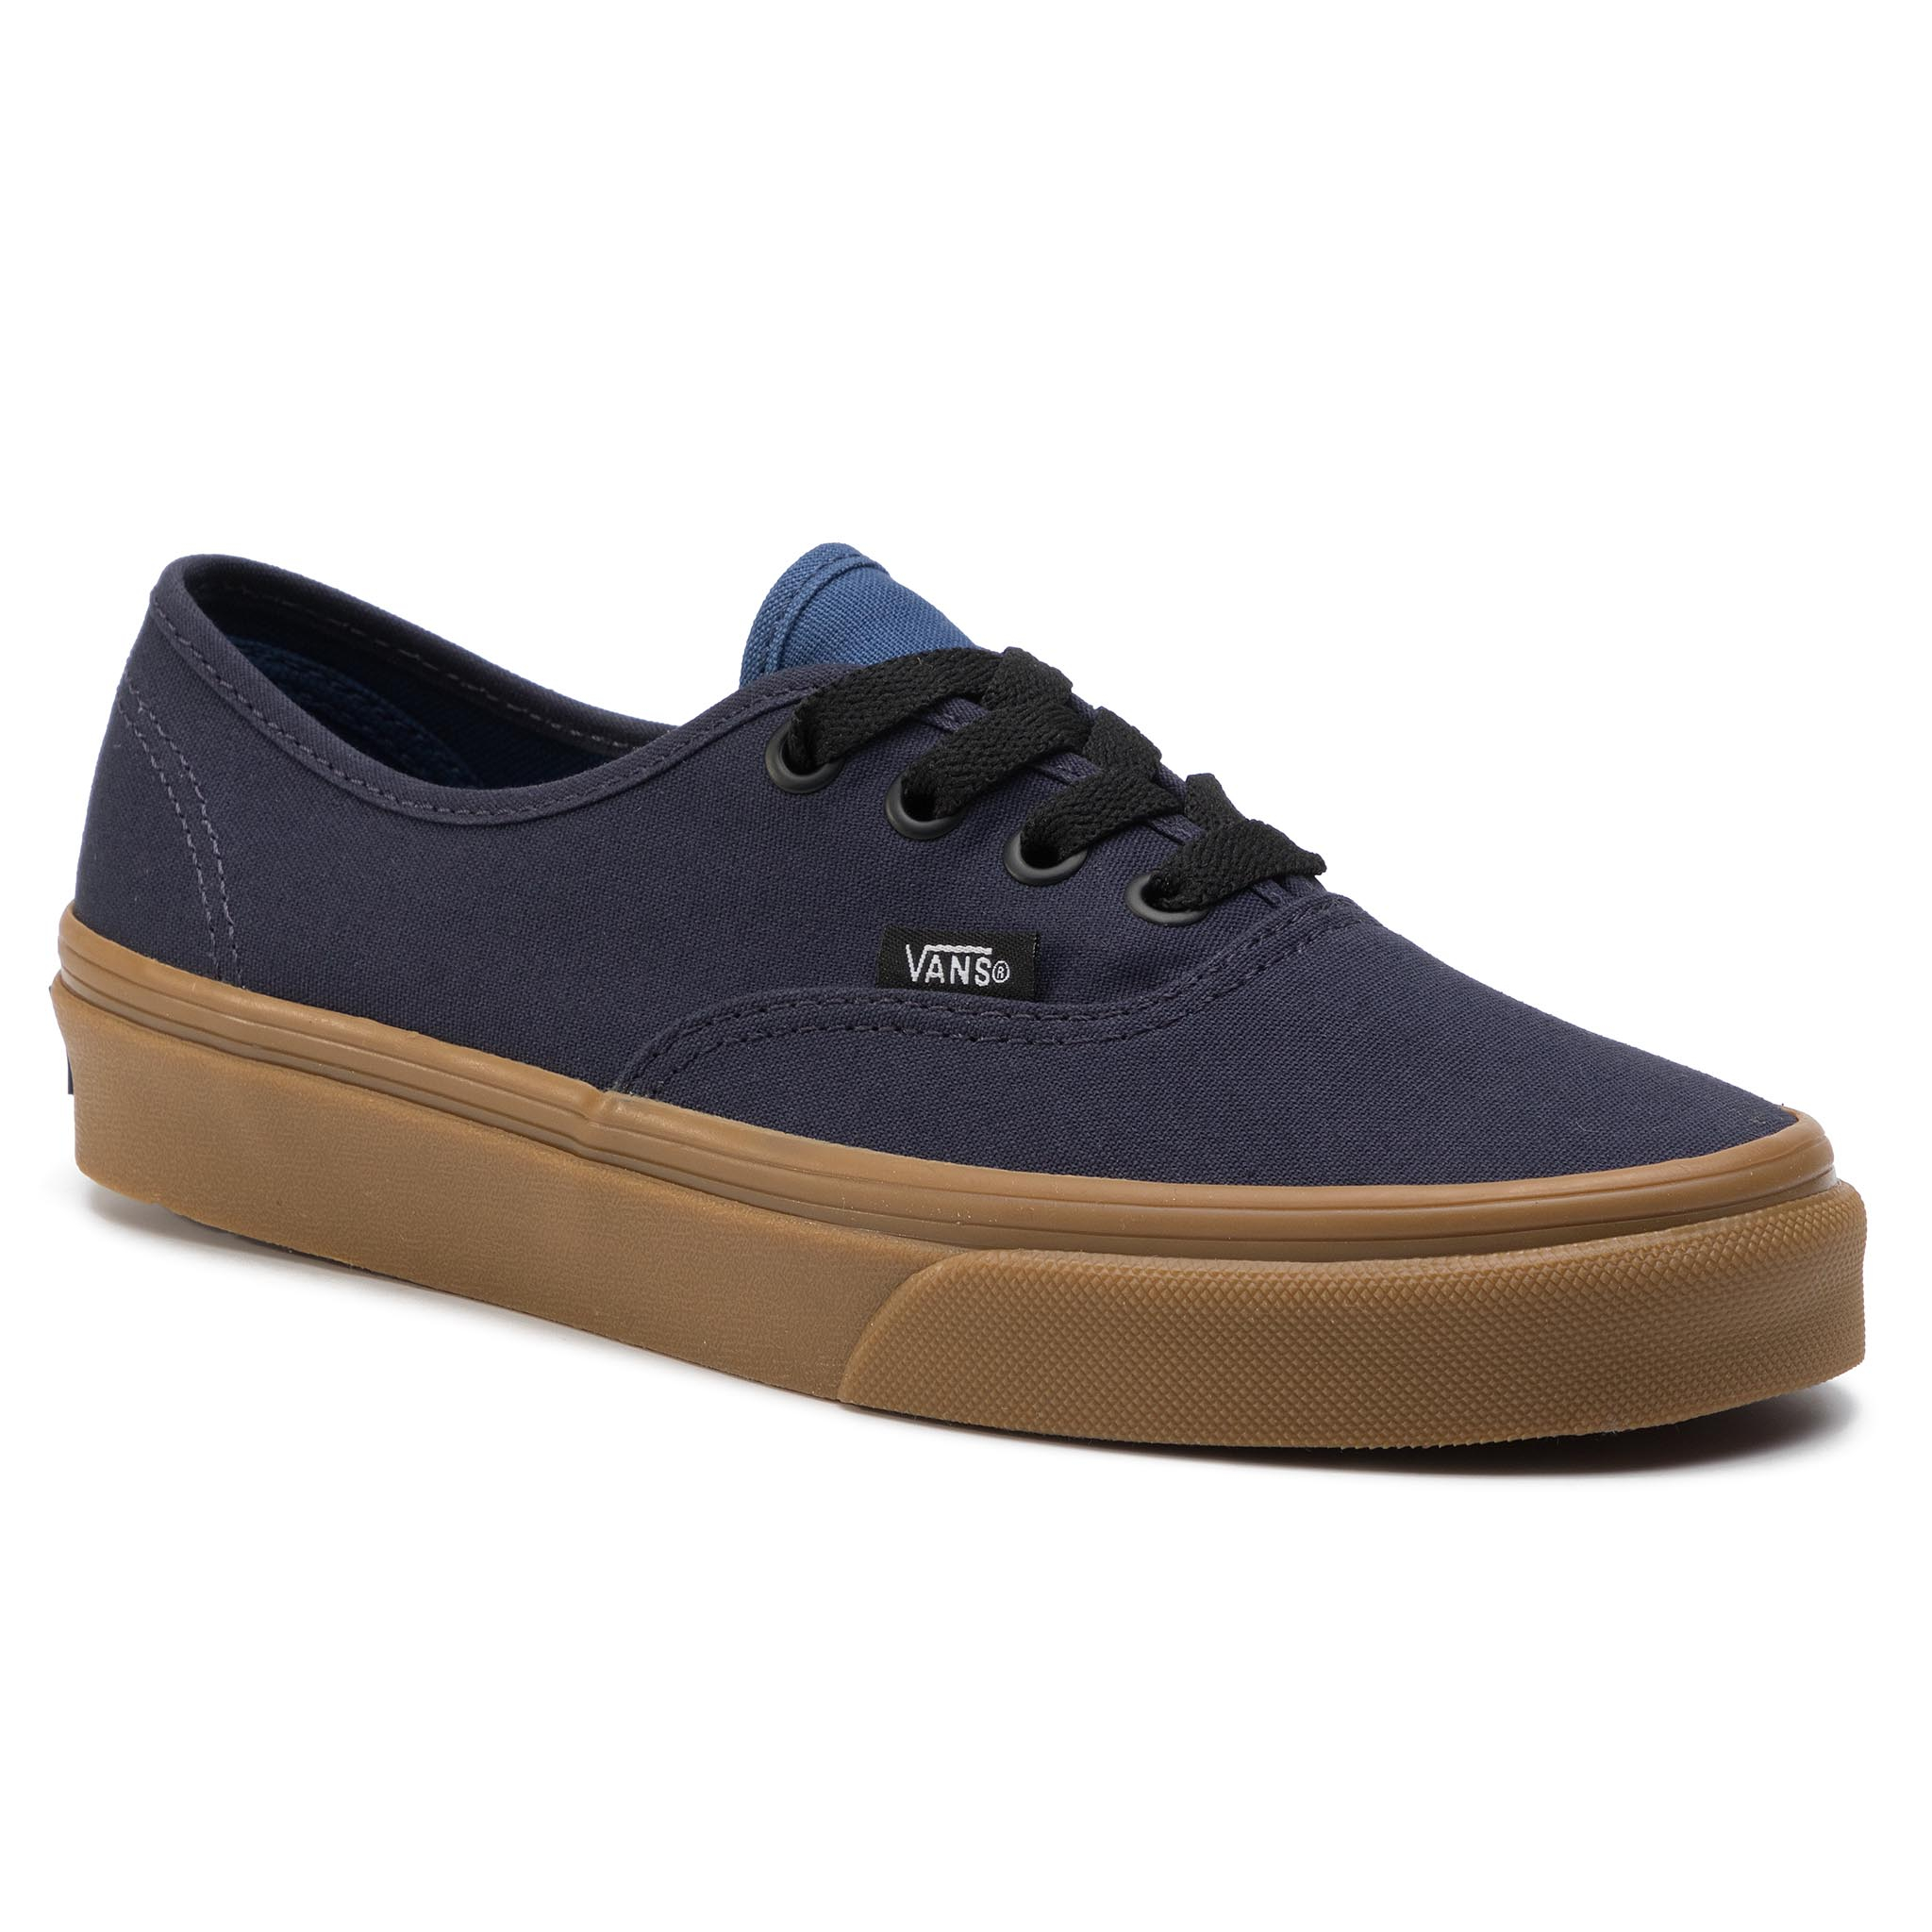 Teniși VANS - Authentic VN0A2Z5IV4R1 (Gum)Night Sky/True